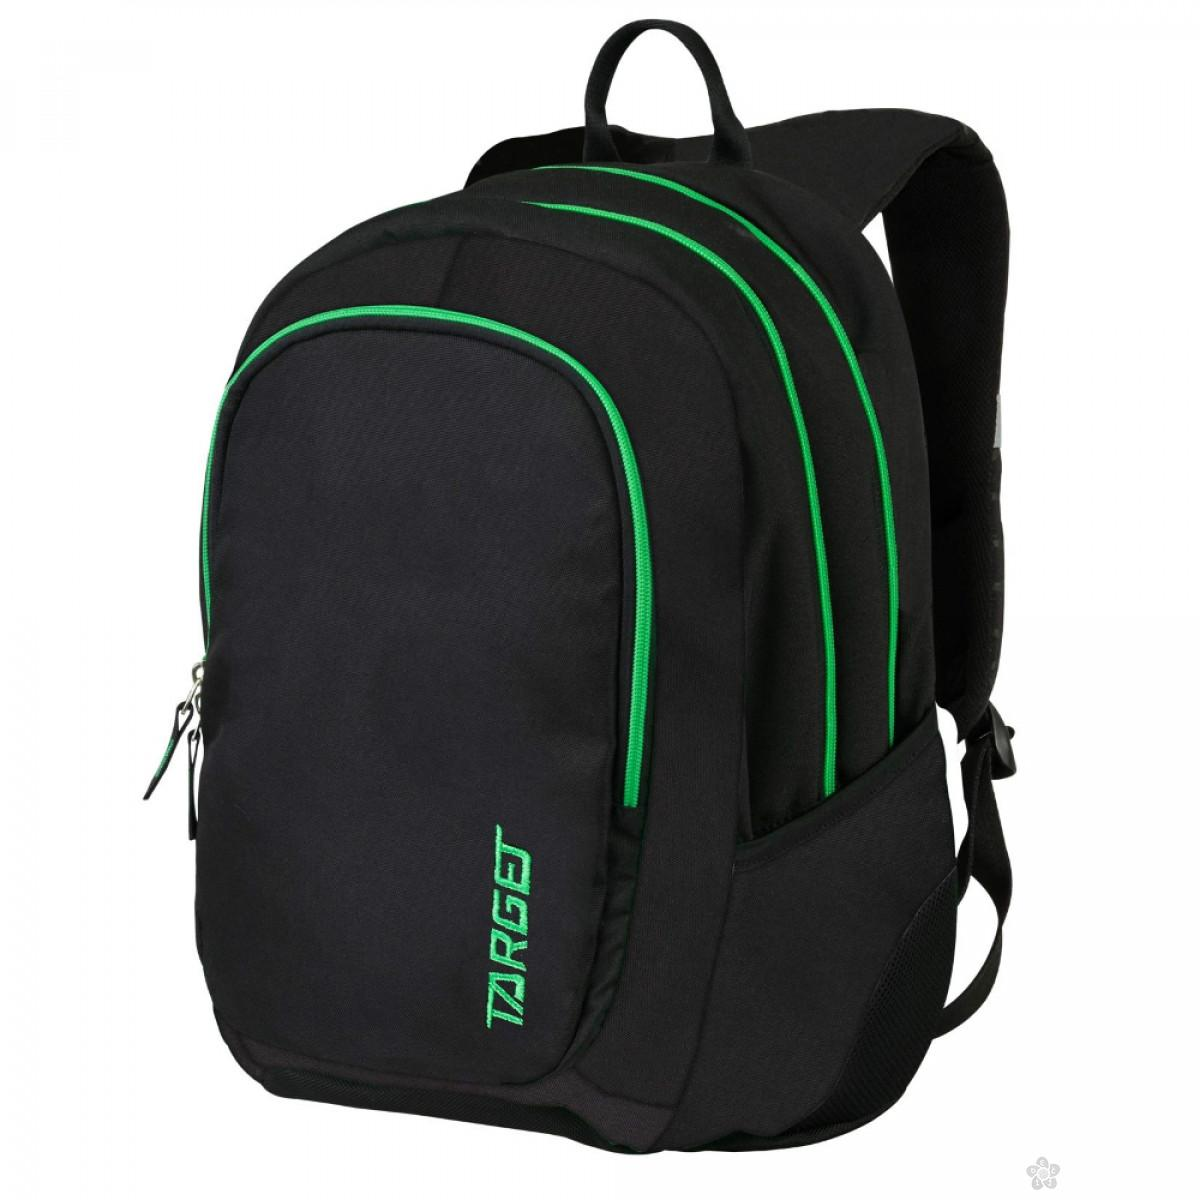 Ranac 3 zipa Black Apple Green  Target 26192